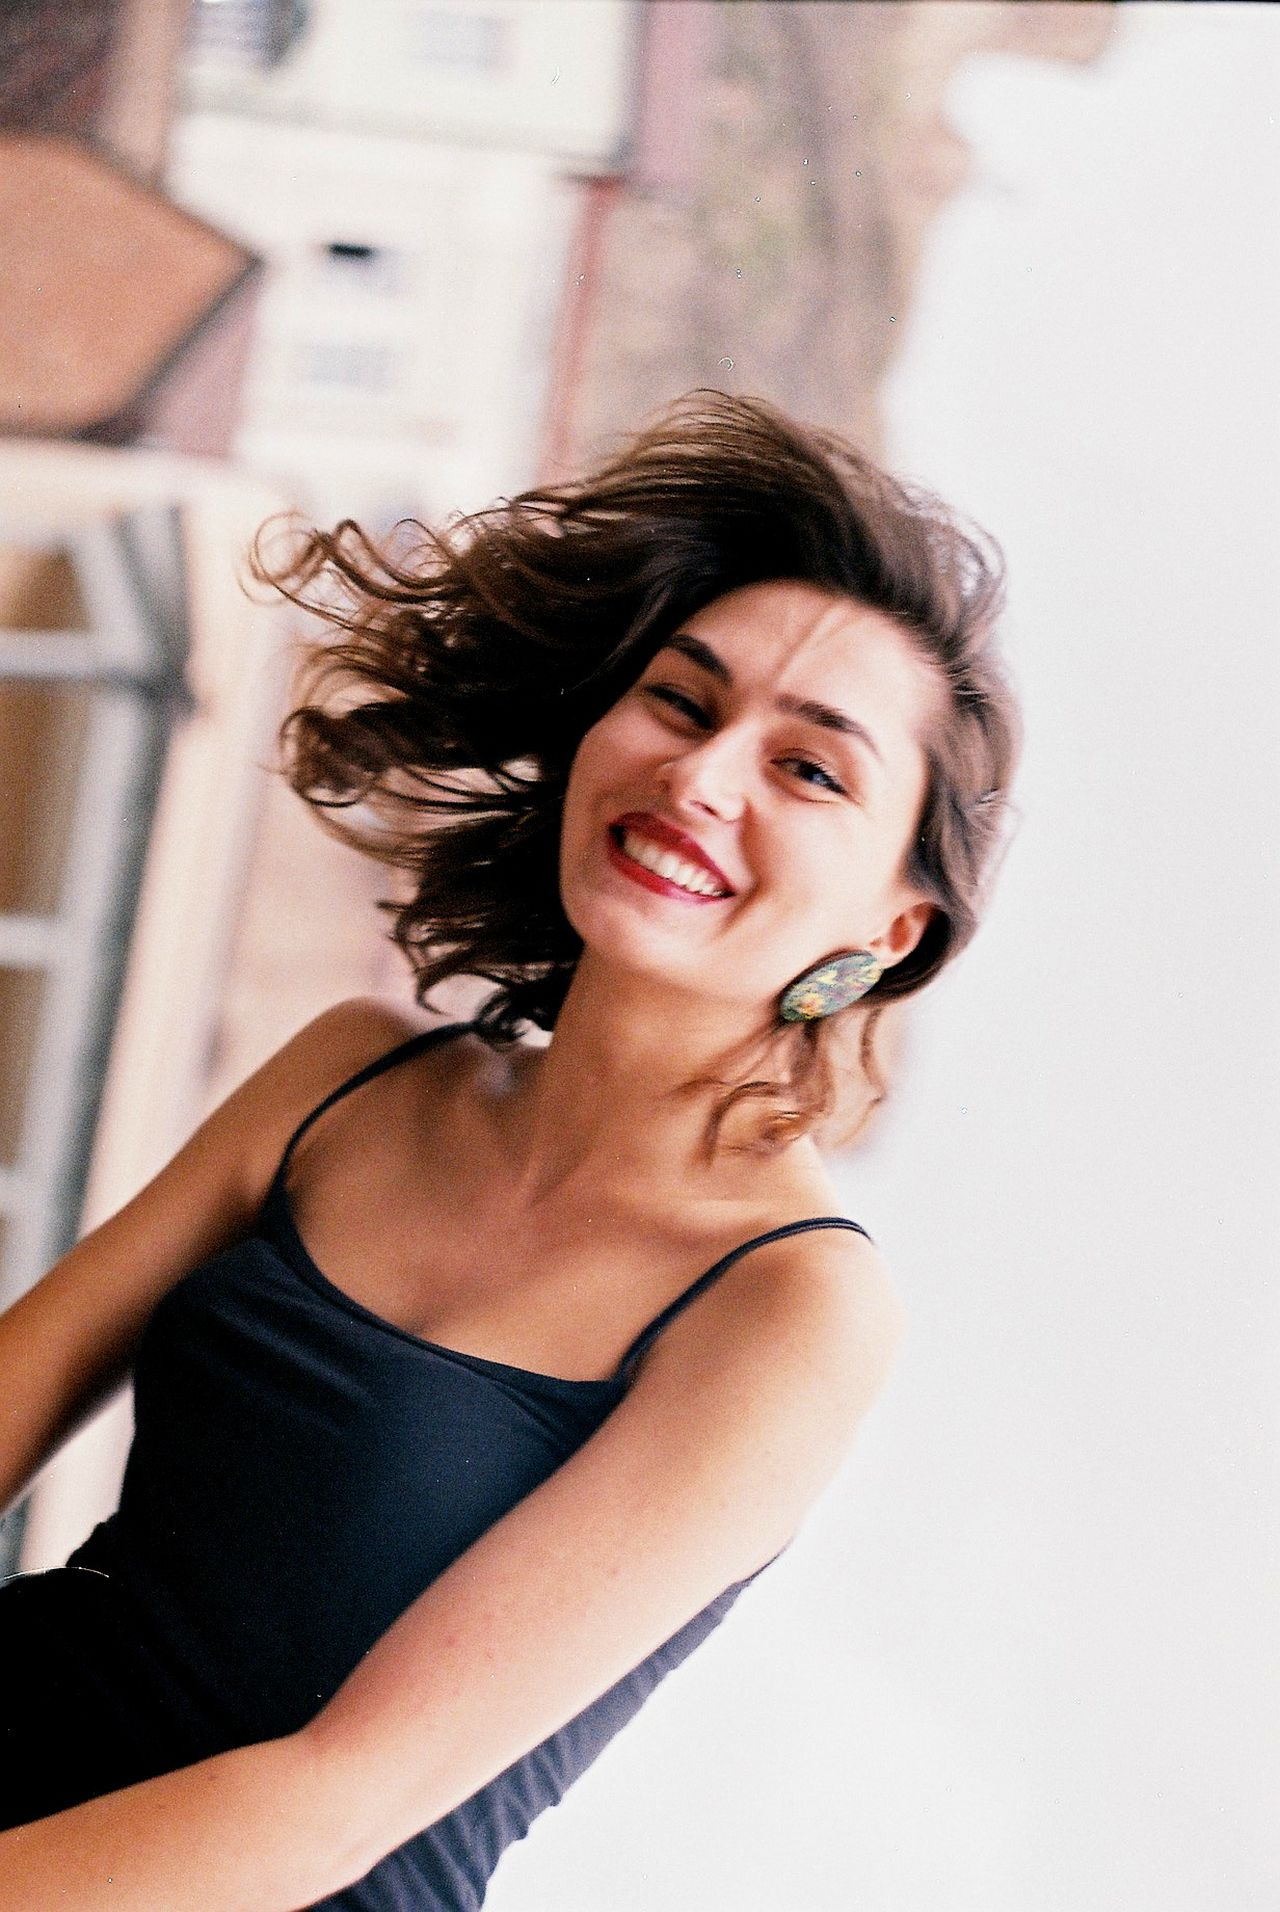 Adult Beautiful People Beautiful Woman Beauty Cheerful Close-up Day Fashion Film Film Photography Happiness Headshot Human Body Part Indoors  One Person One Woman Only One Young Woman Only Only Women People Portrait Real People Smiling Young Adult Young Women